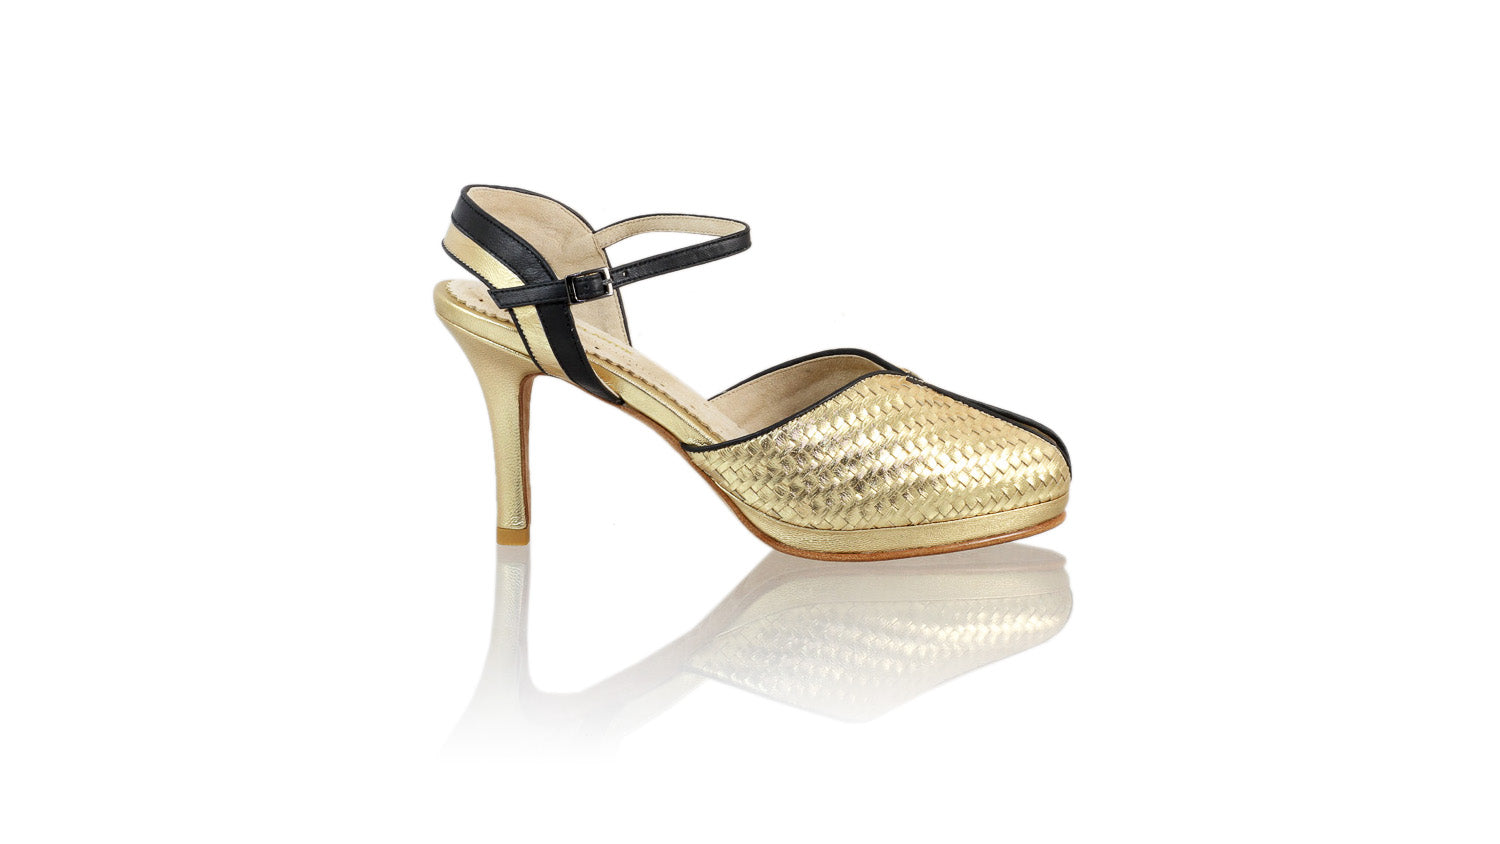 Leather-shoes-Agnes Woven 90mm SH-01 PF - Gold & Black-pumps highheel-NILUH DJELANTIK-NILUH DJELANTIK